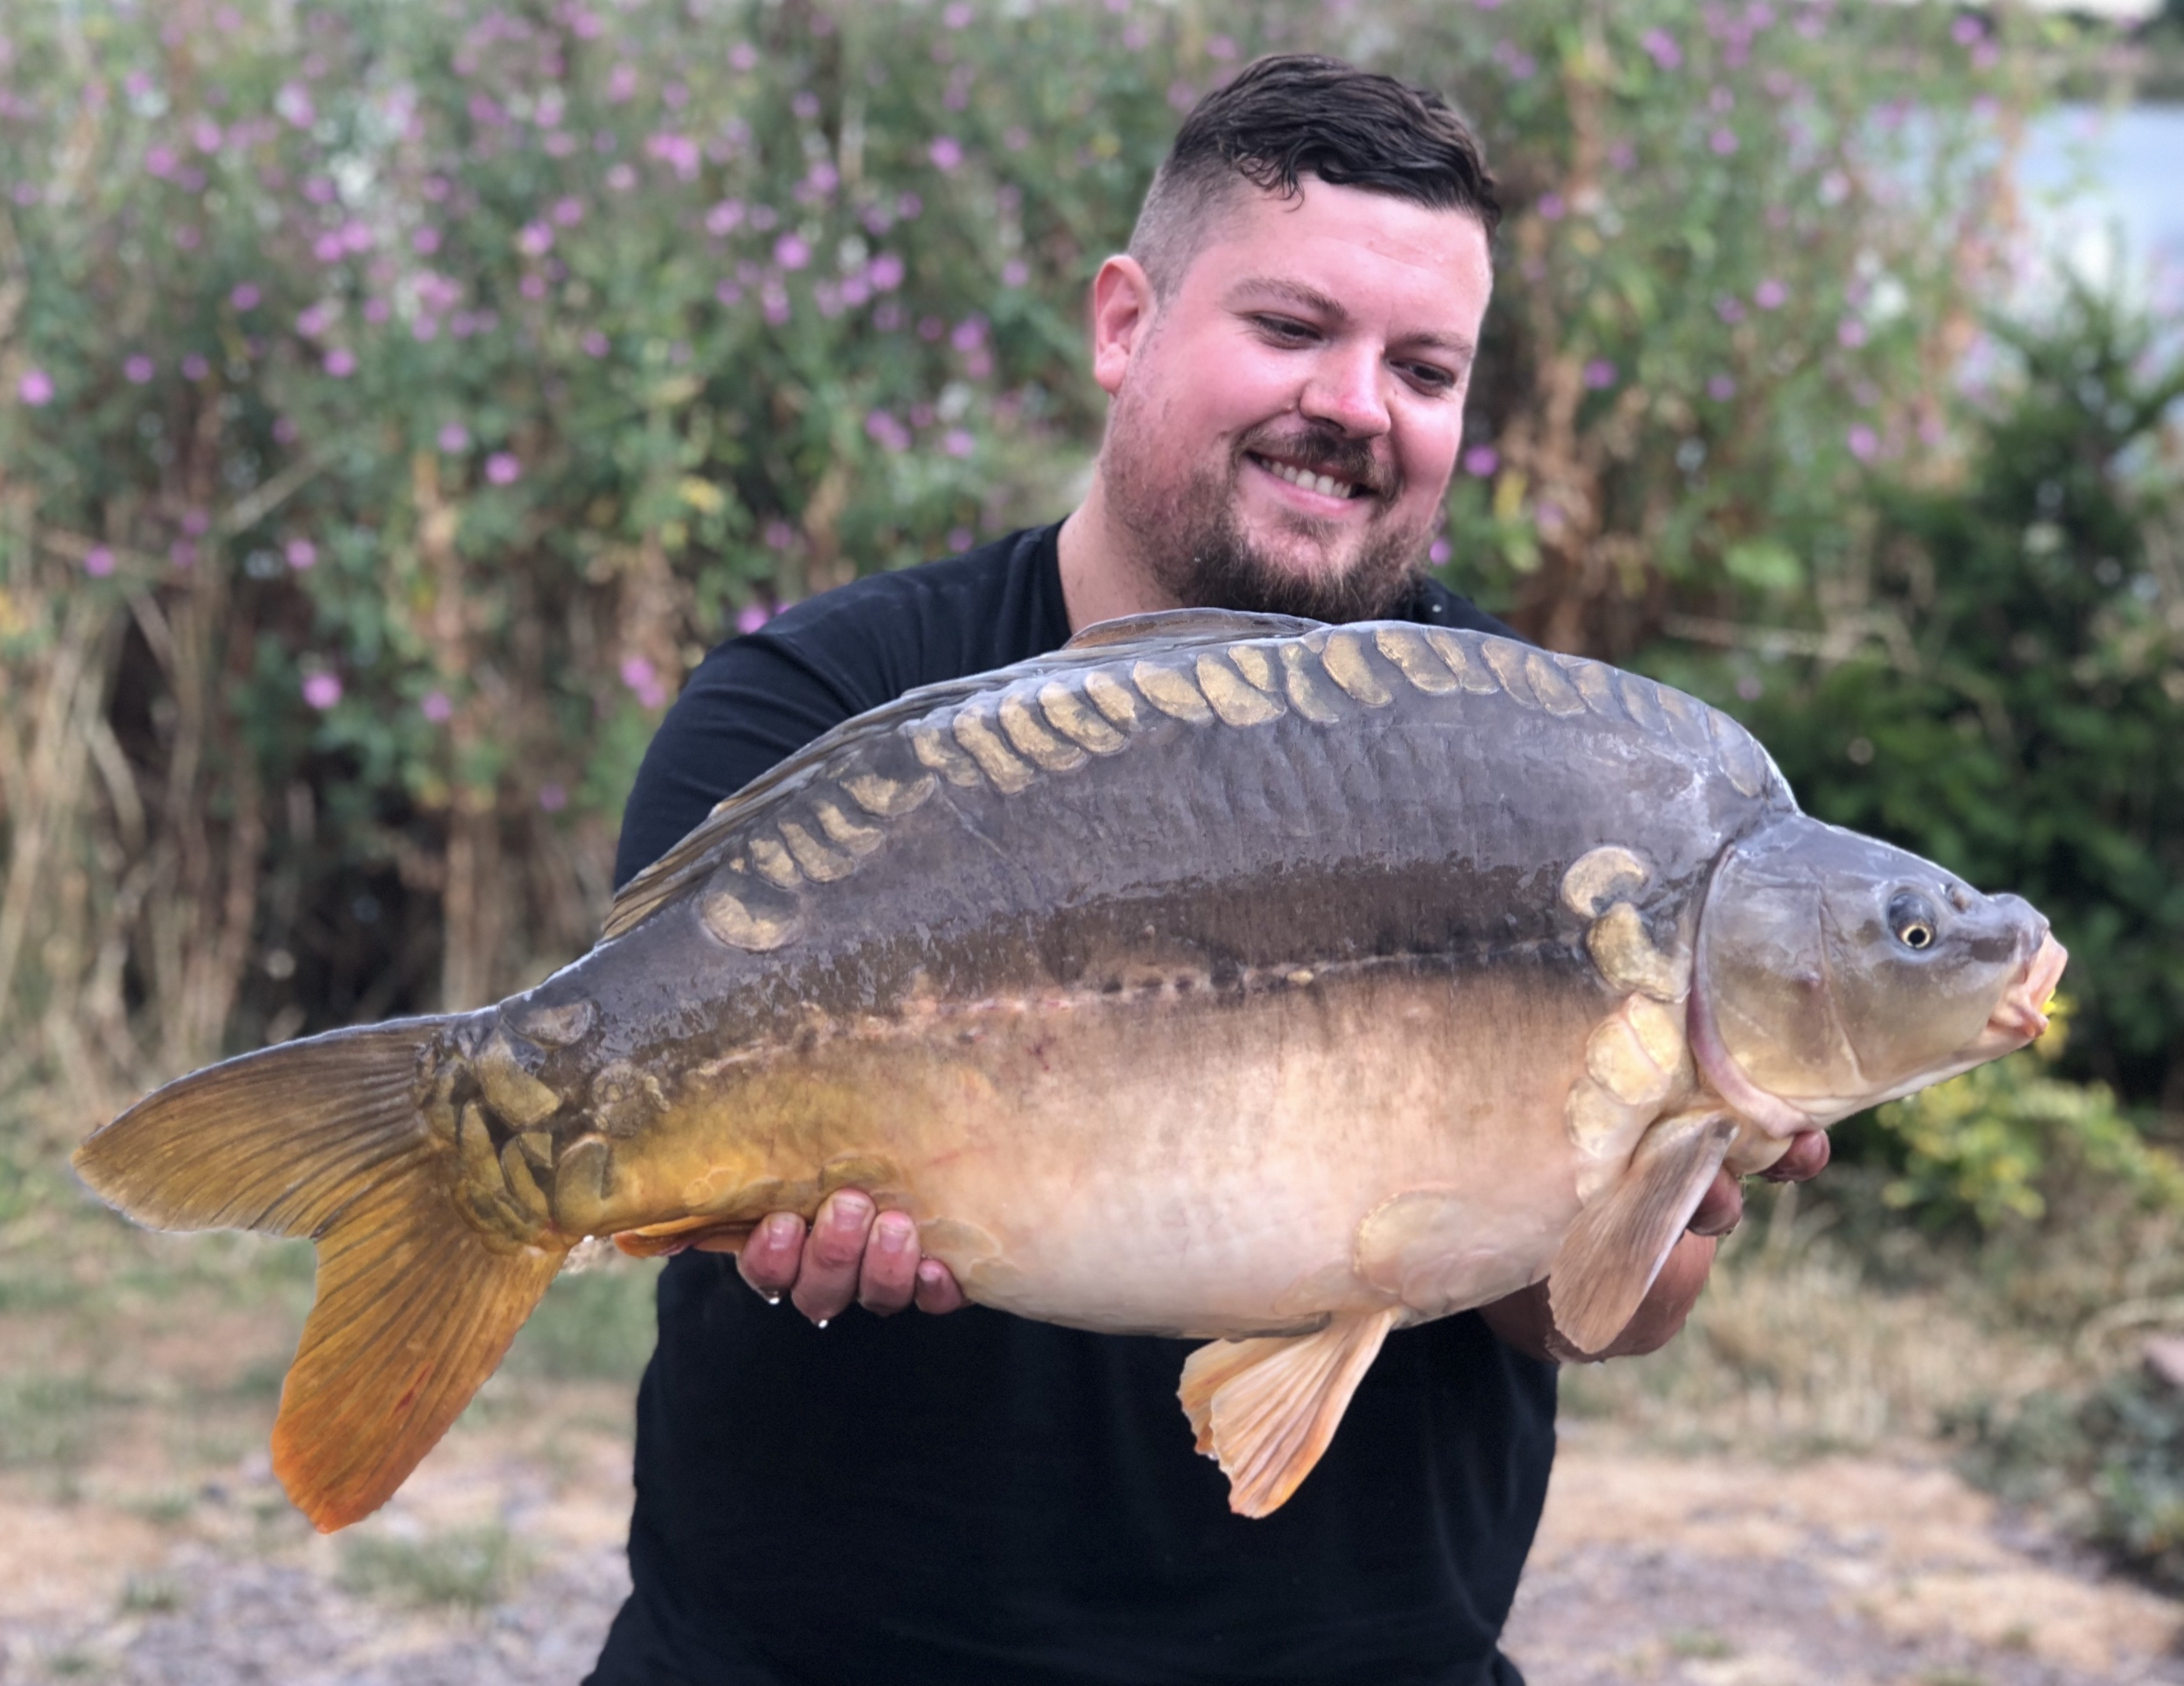 23-06 caught on Boilie